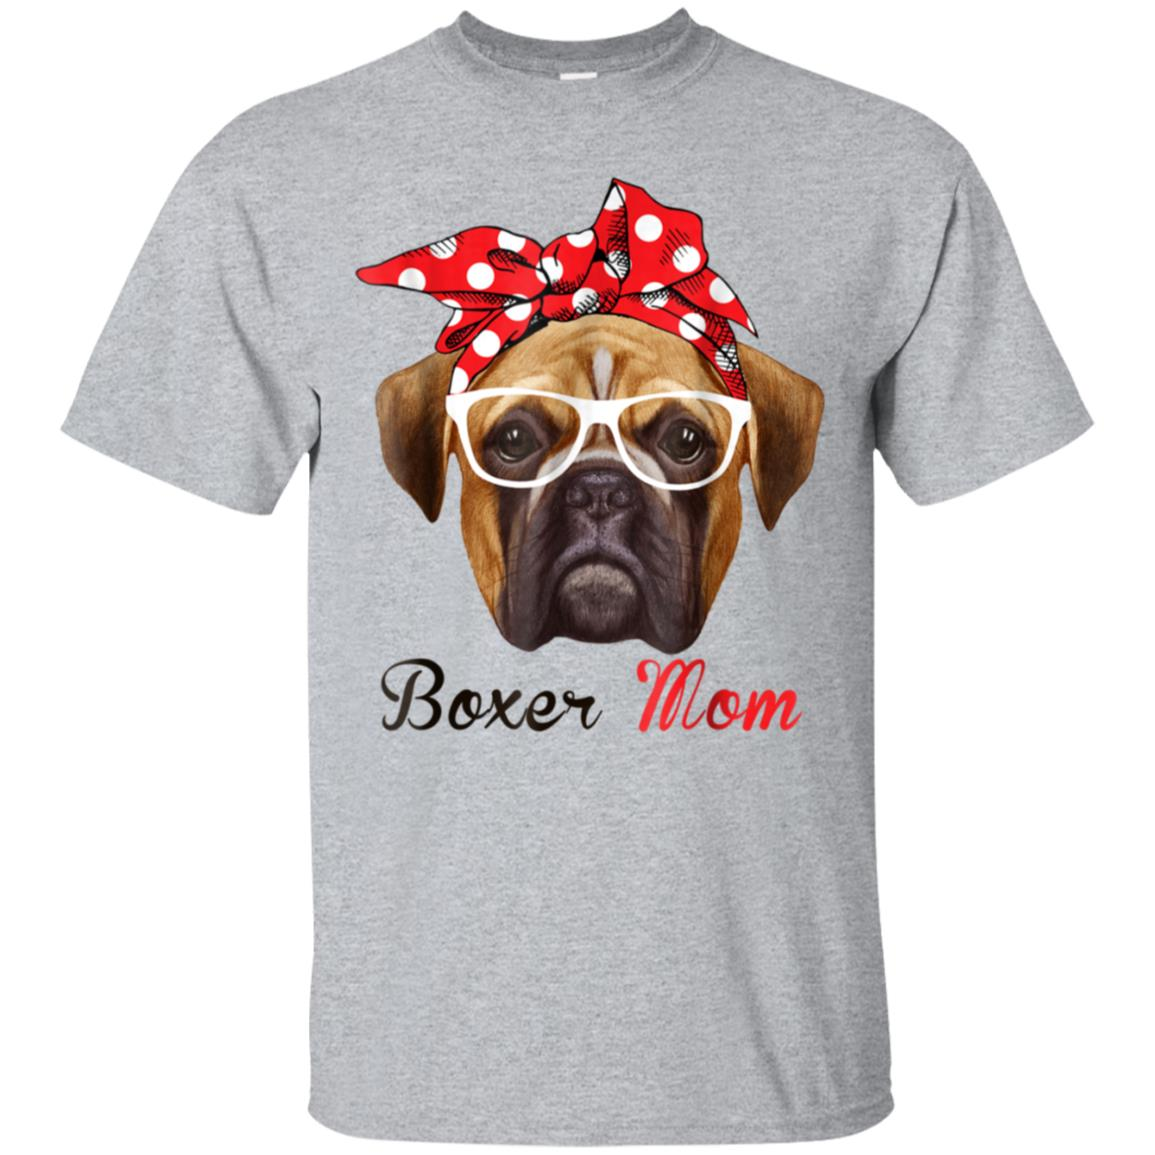 Funny Boxer Mom Shirt for Women Men Boxer Dogs Lovers 99promocode